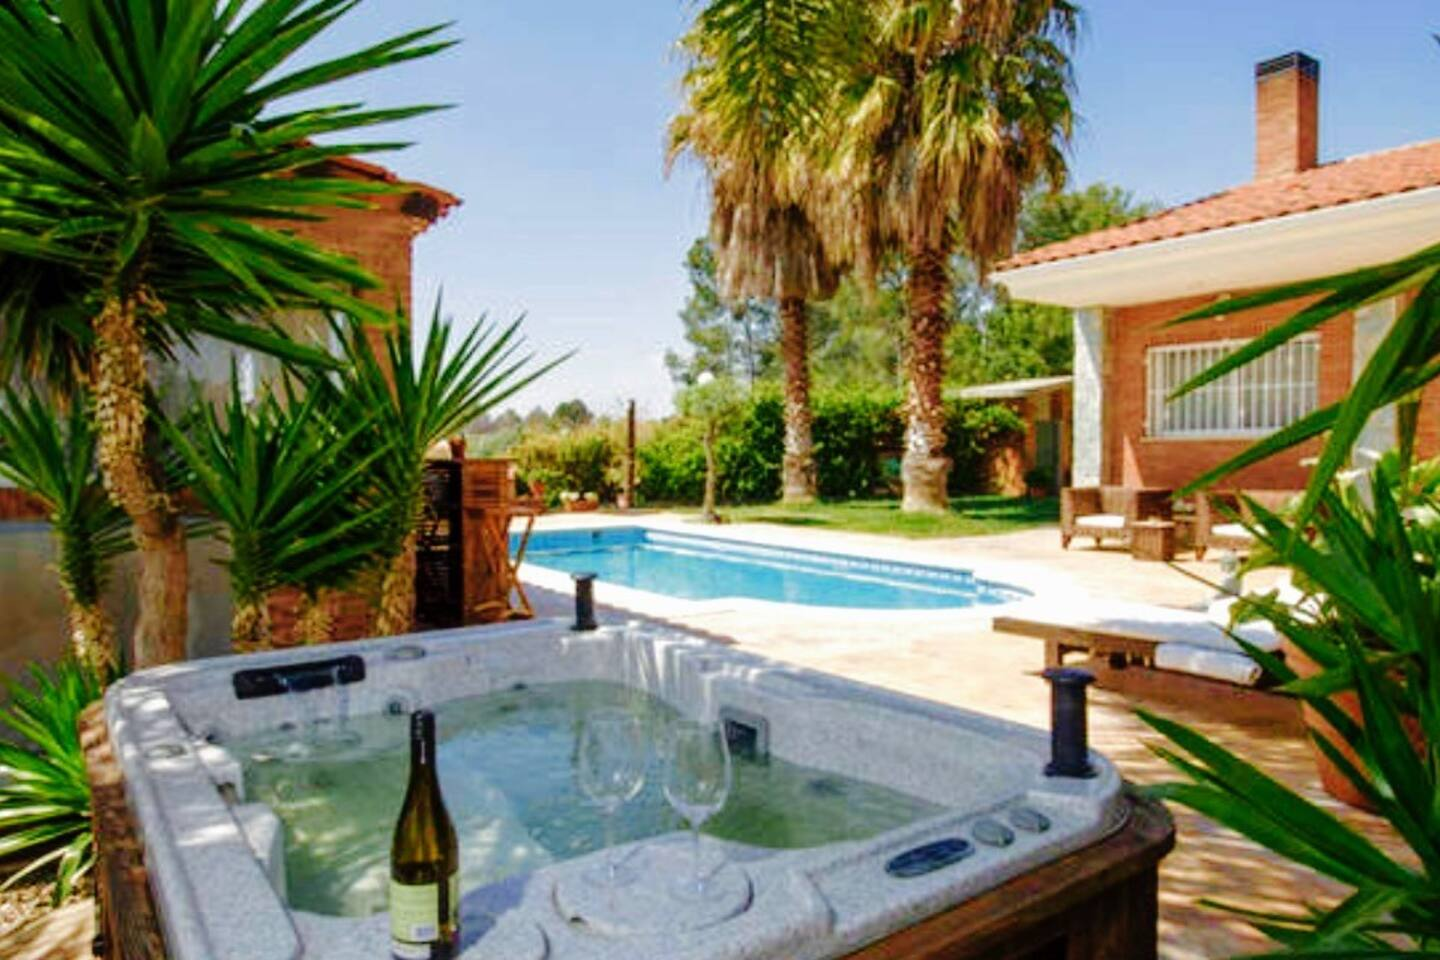 Jardín con tumbonas, chill outh, piscina y jacuzzi exterior privados.  Garden with sun loungers, chill outh, private outdoor pool and jacuzzi.  Jardin avec chaises longues, chill outh, piscine extérieure privée et jacuzzi